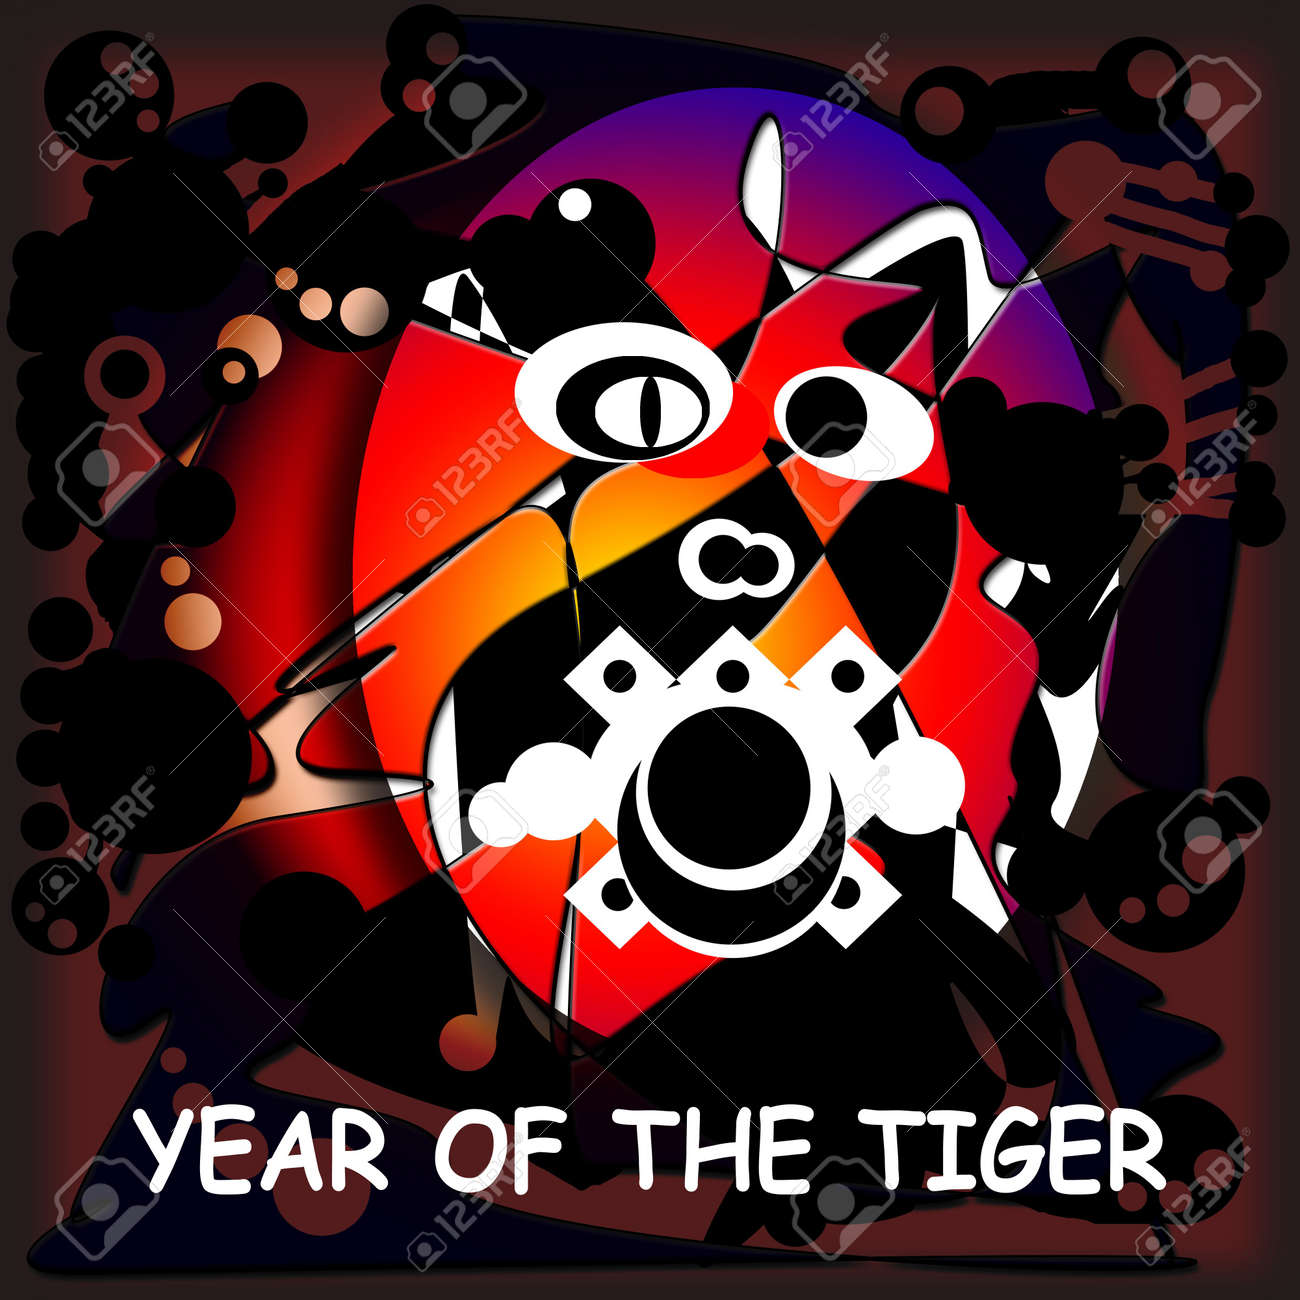 Abstract Illustration with a Tiger To Chinese New Year Stock Photo - 6285924